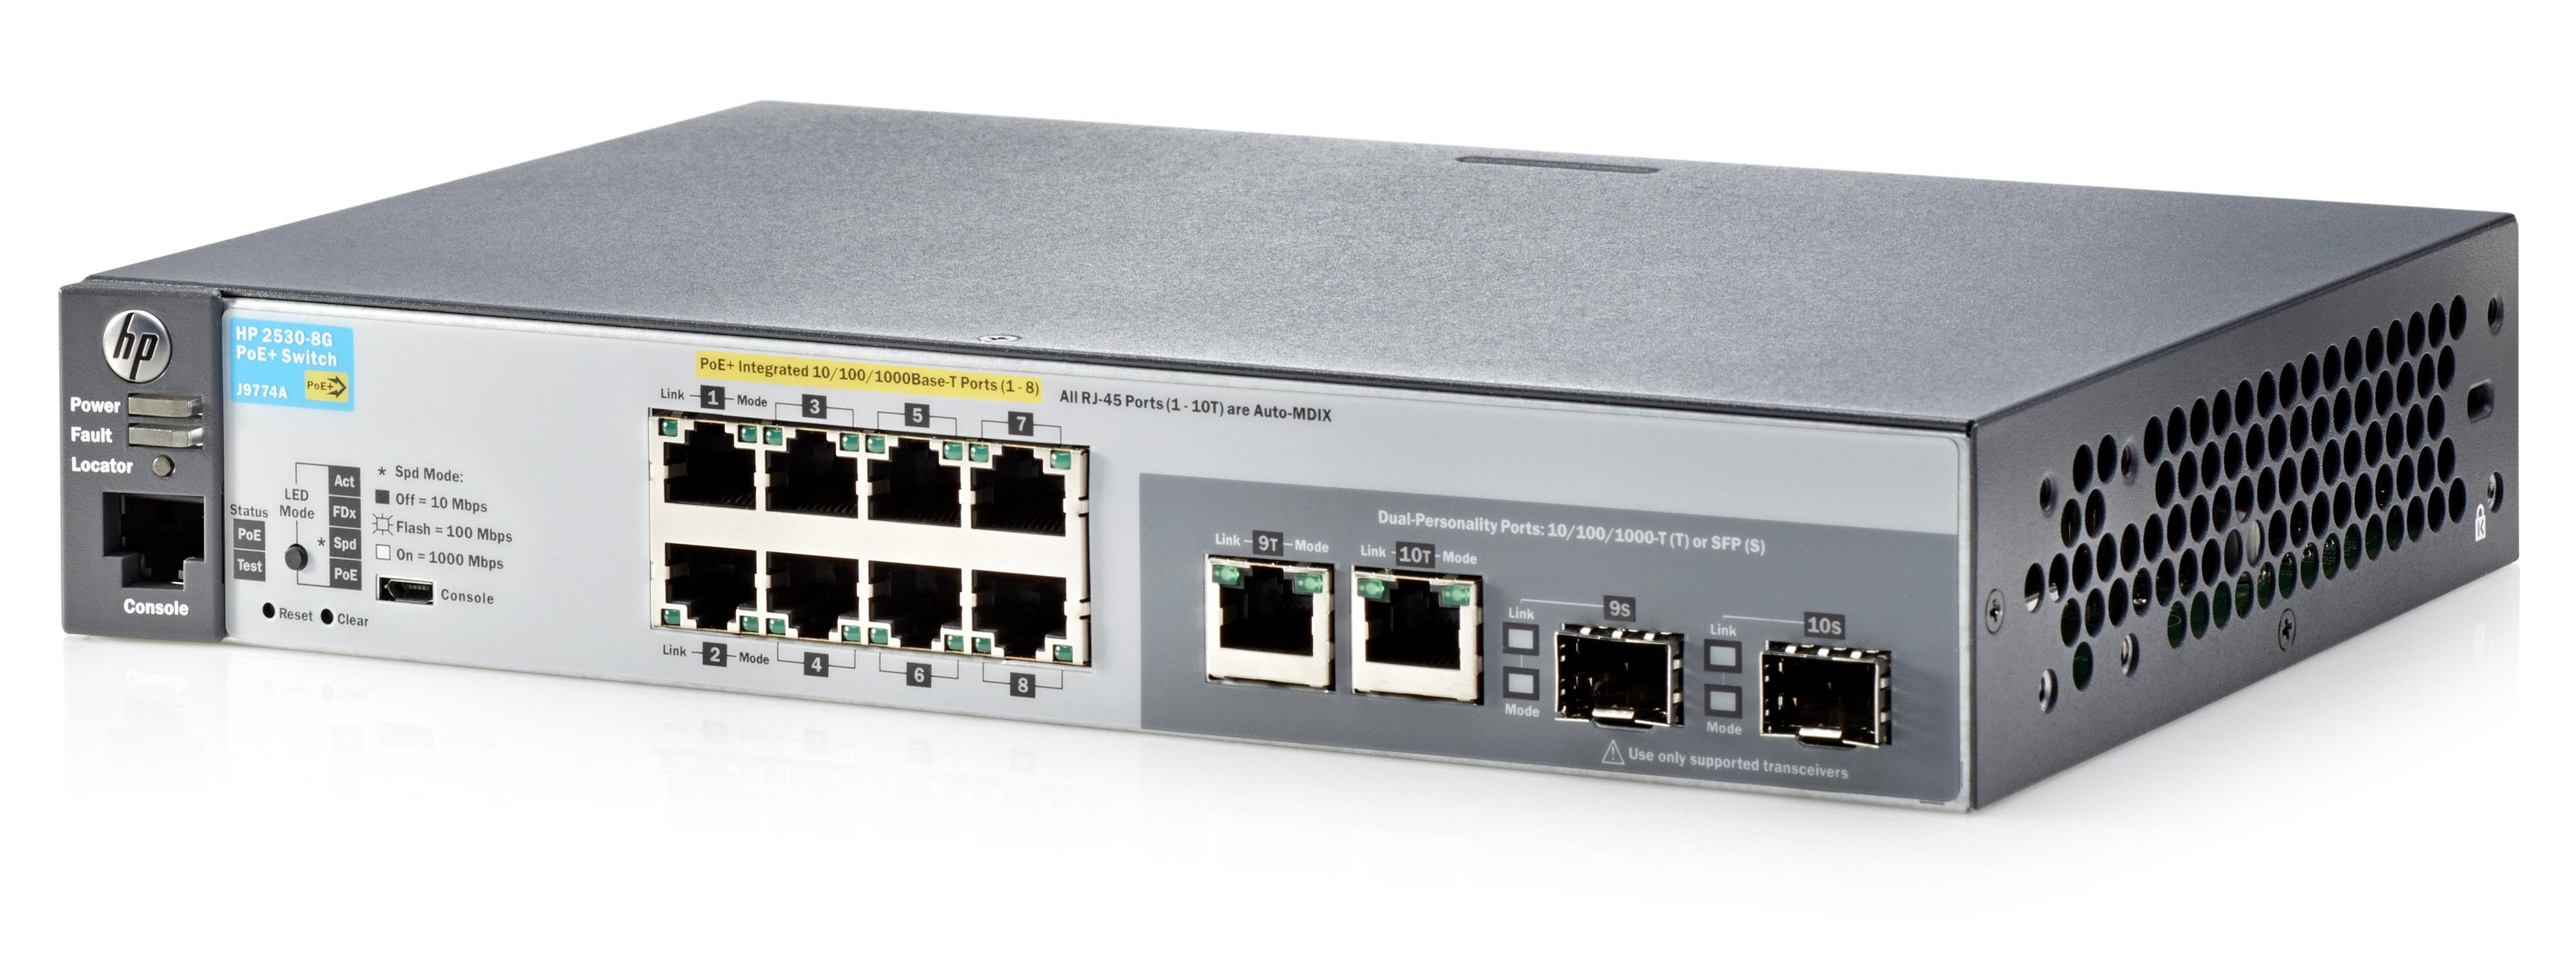 J9774A HP 2530-8G-PoE+ Managed network switch L2 Gigabit Ethernet